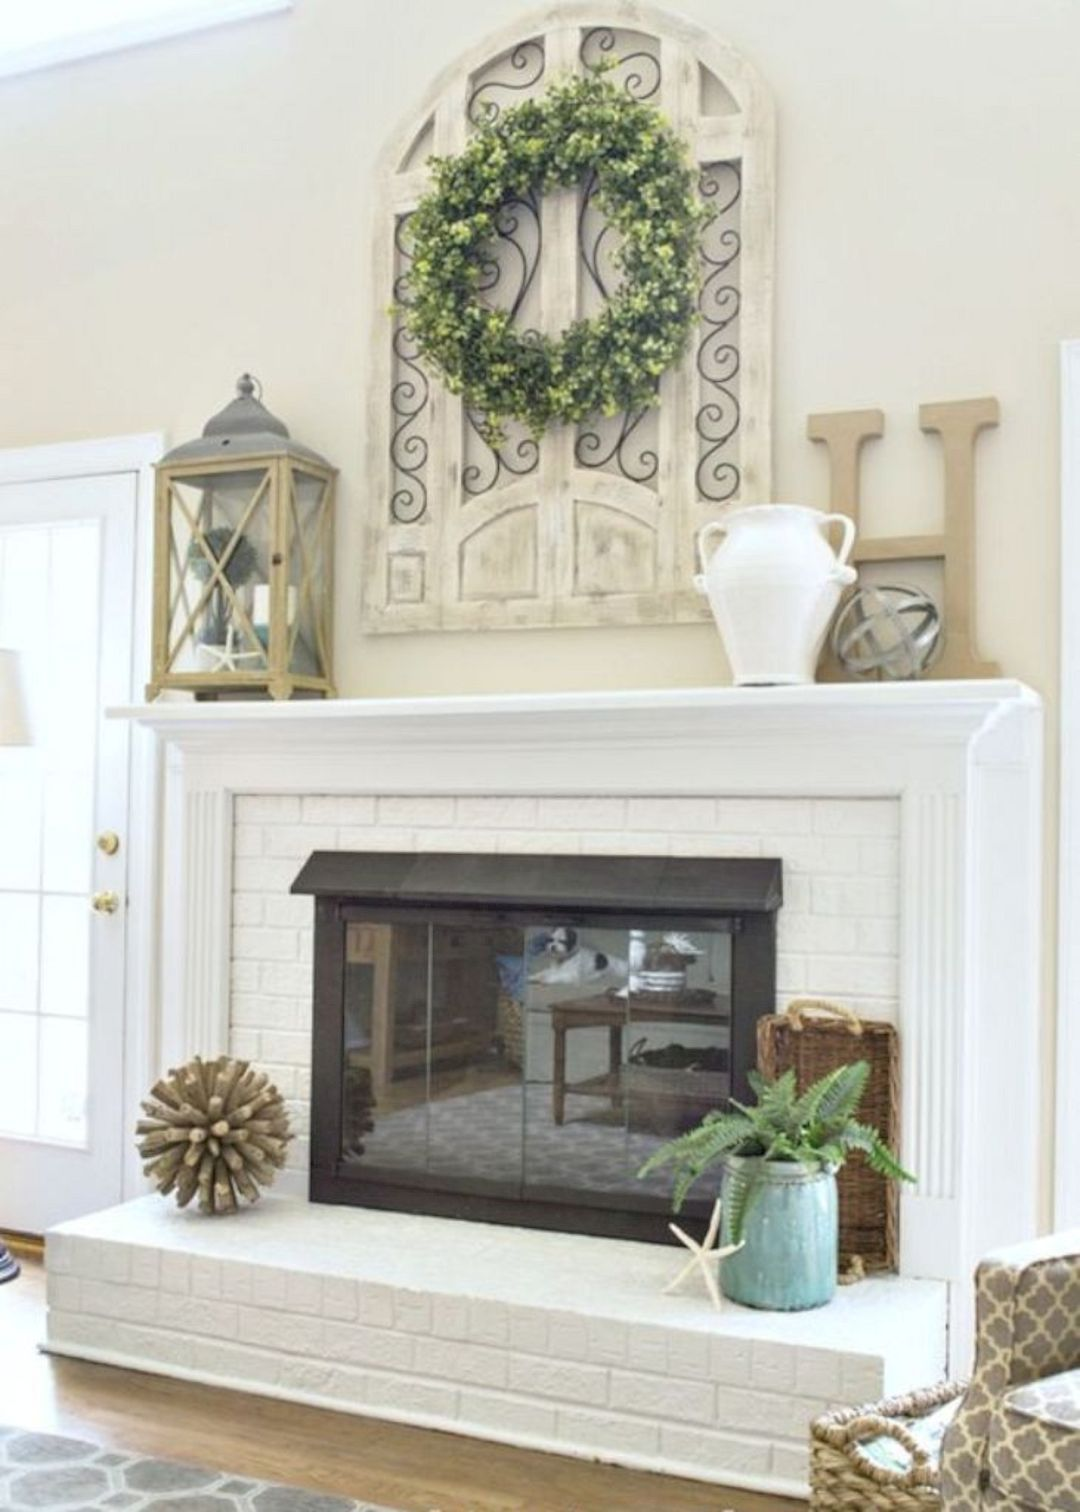 Fireplace Mantel Decorating Ideas 6 Home Fireplace Mantels Home